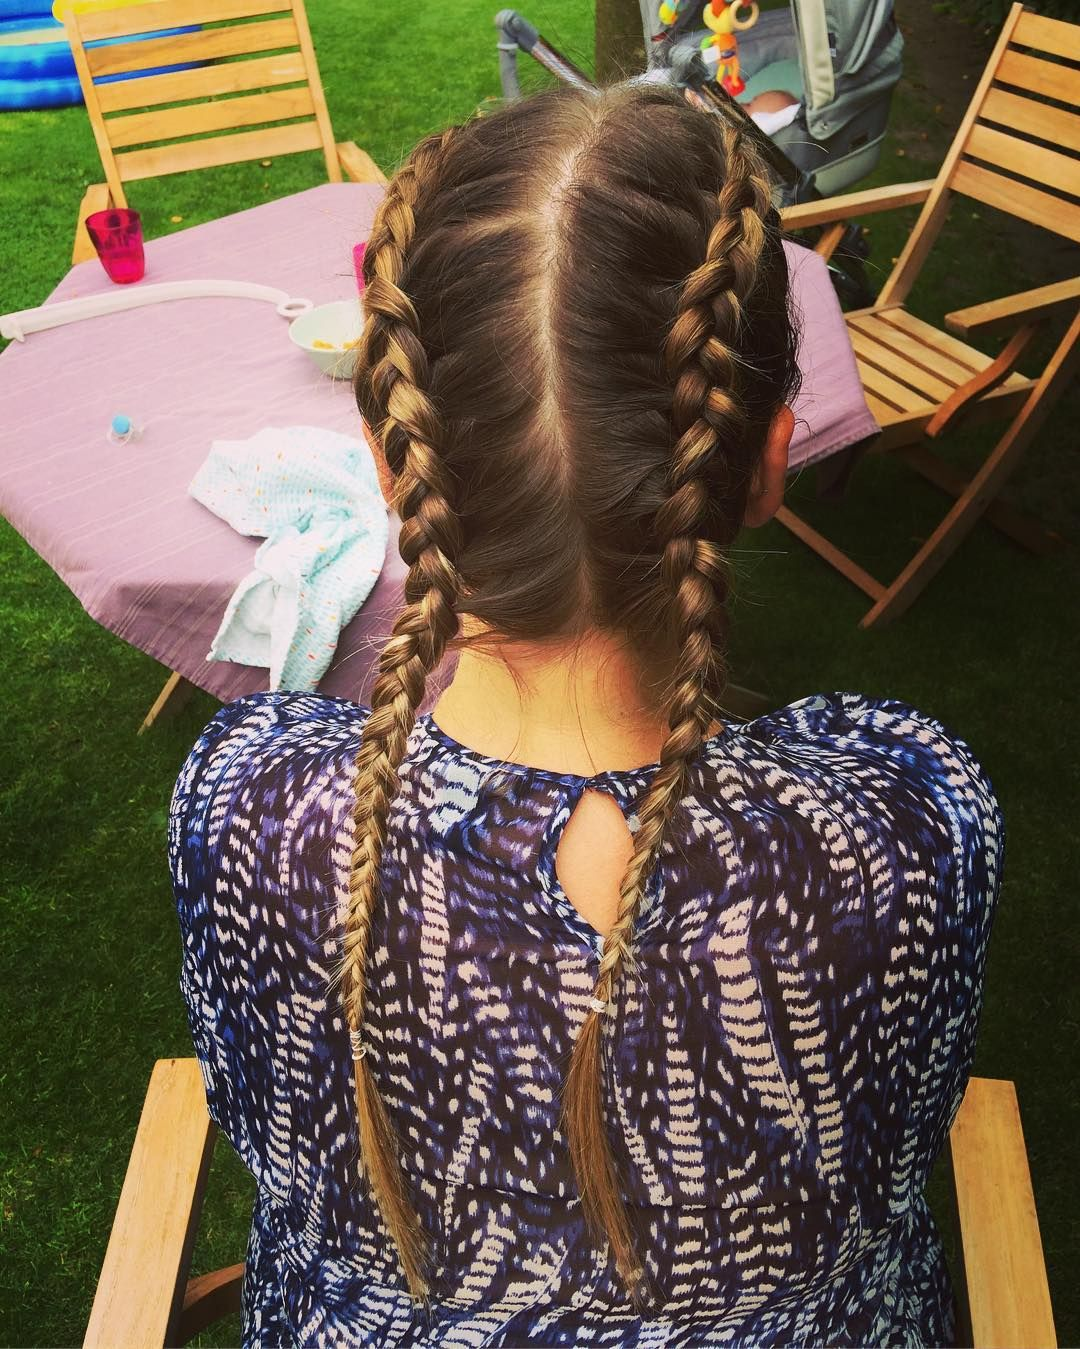 The Exact Internet Beauty Trend For You According To Myers Briggs Boxer Braids Boxer Braids Hairstyles Curly Hair Braids